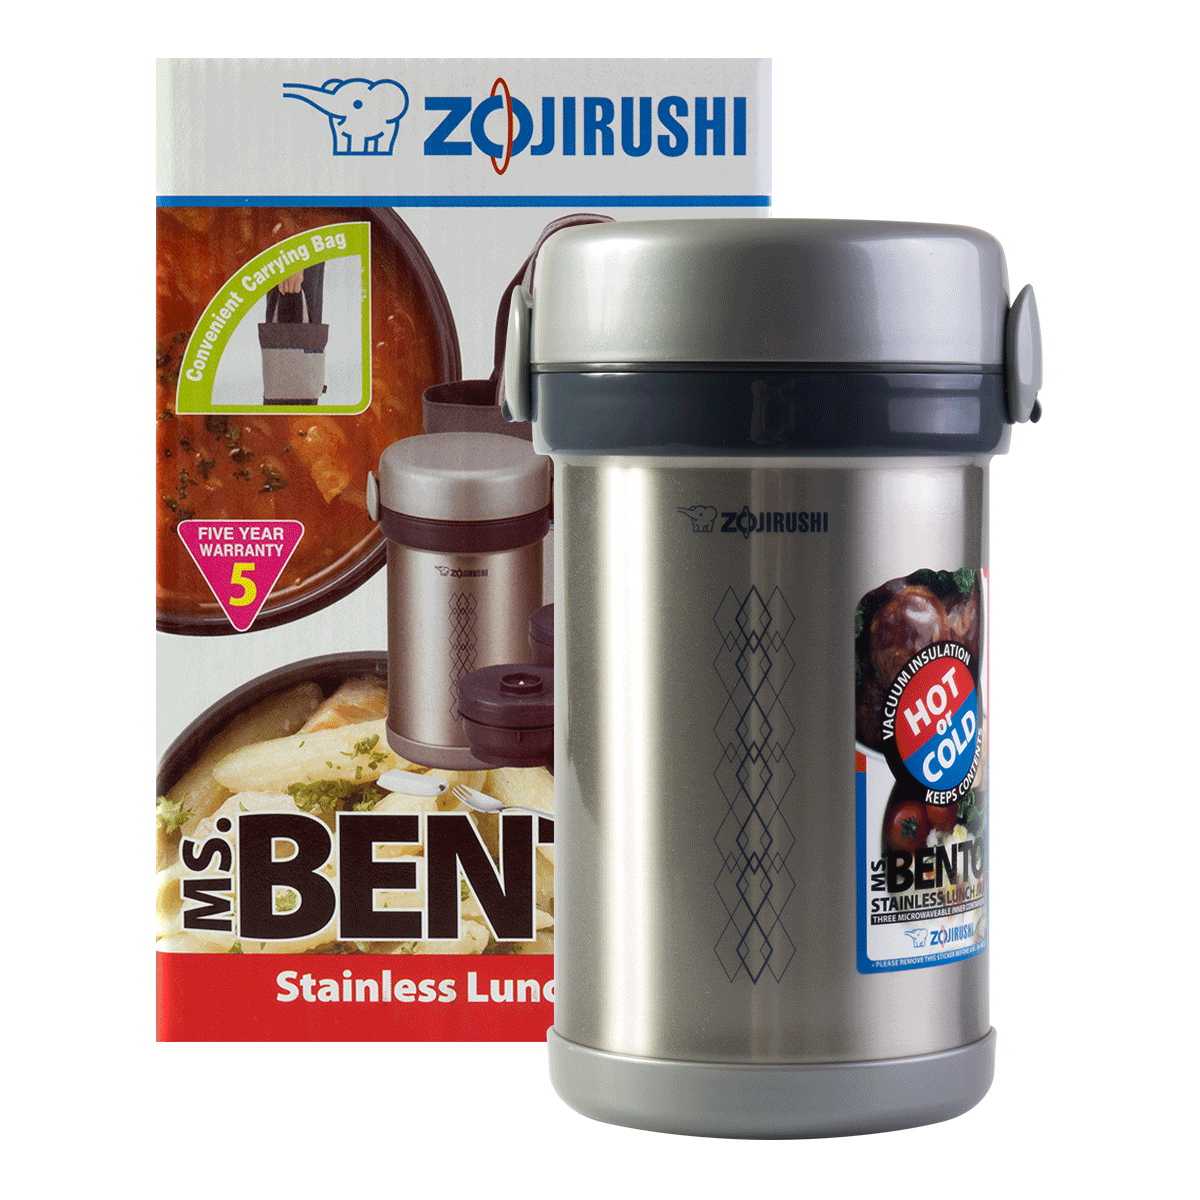 Zojirushi SL-NCE09 Ms. Bento Stainless Steel Vacuum Lunch Jar 840ml SL-NCE09